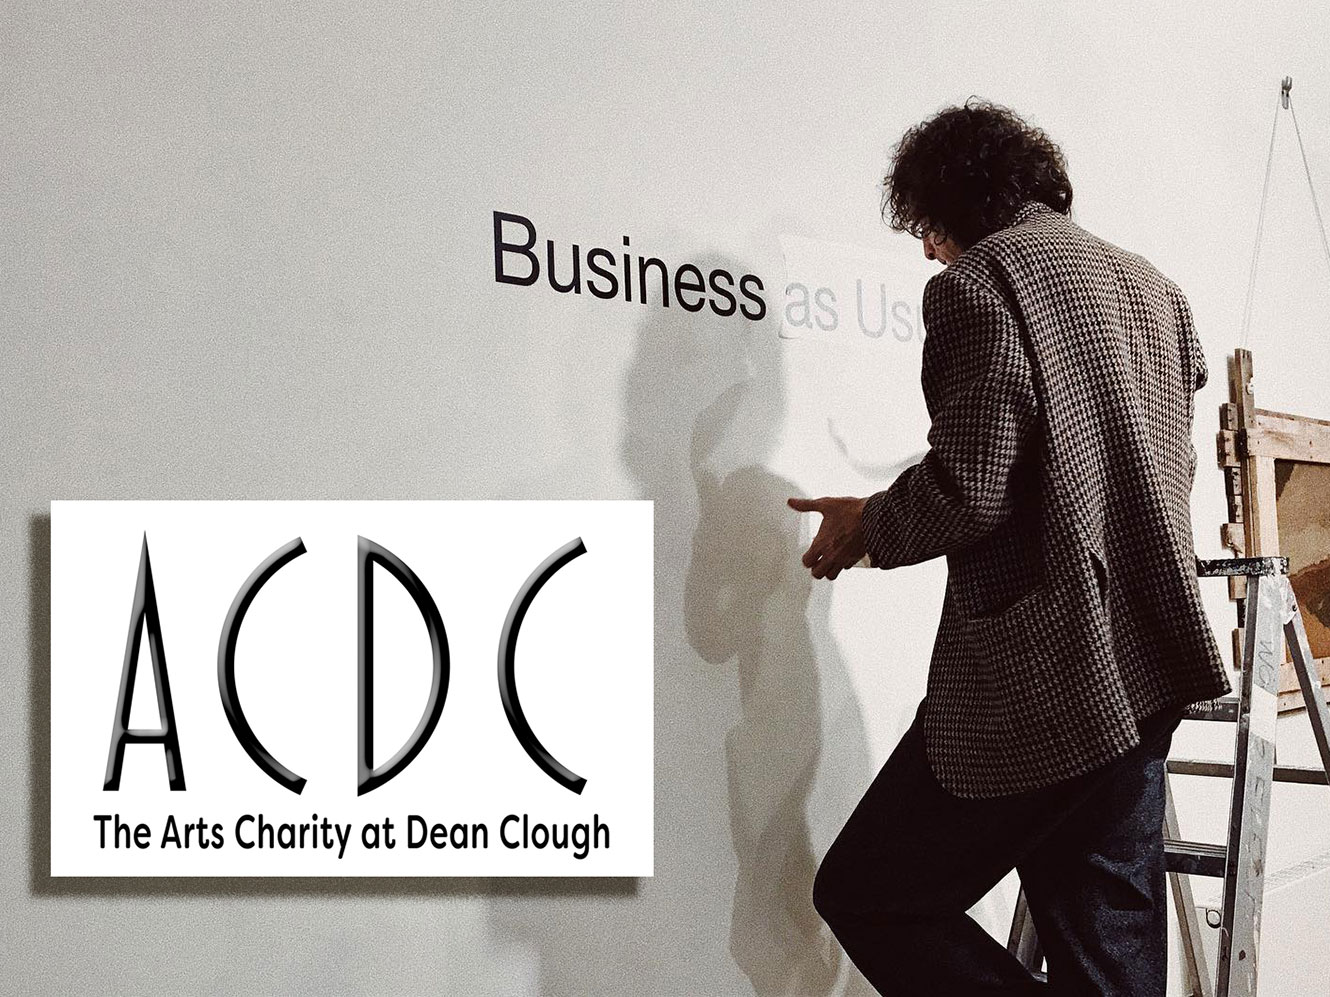 ACDC - The Arts Charity at Dean Clough